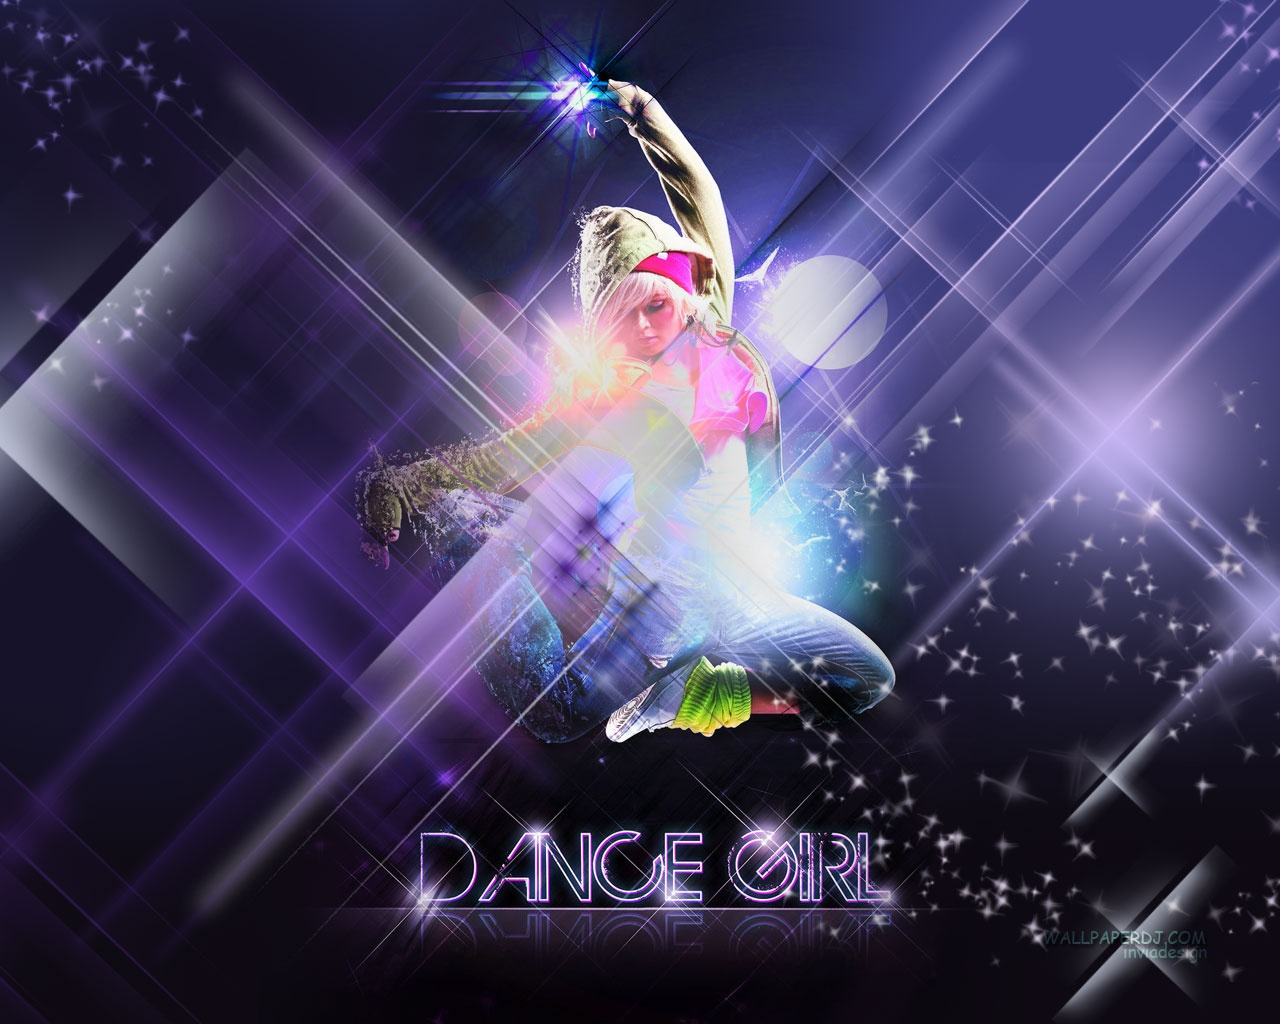 Follow Me ~ Top 100 Dj Wallpapers